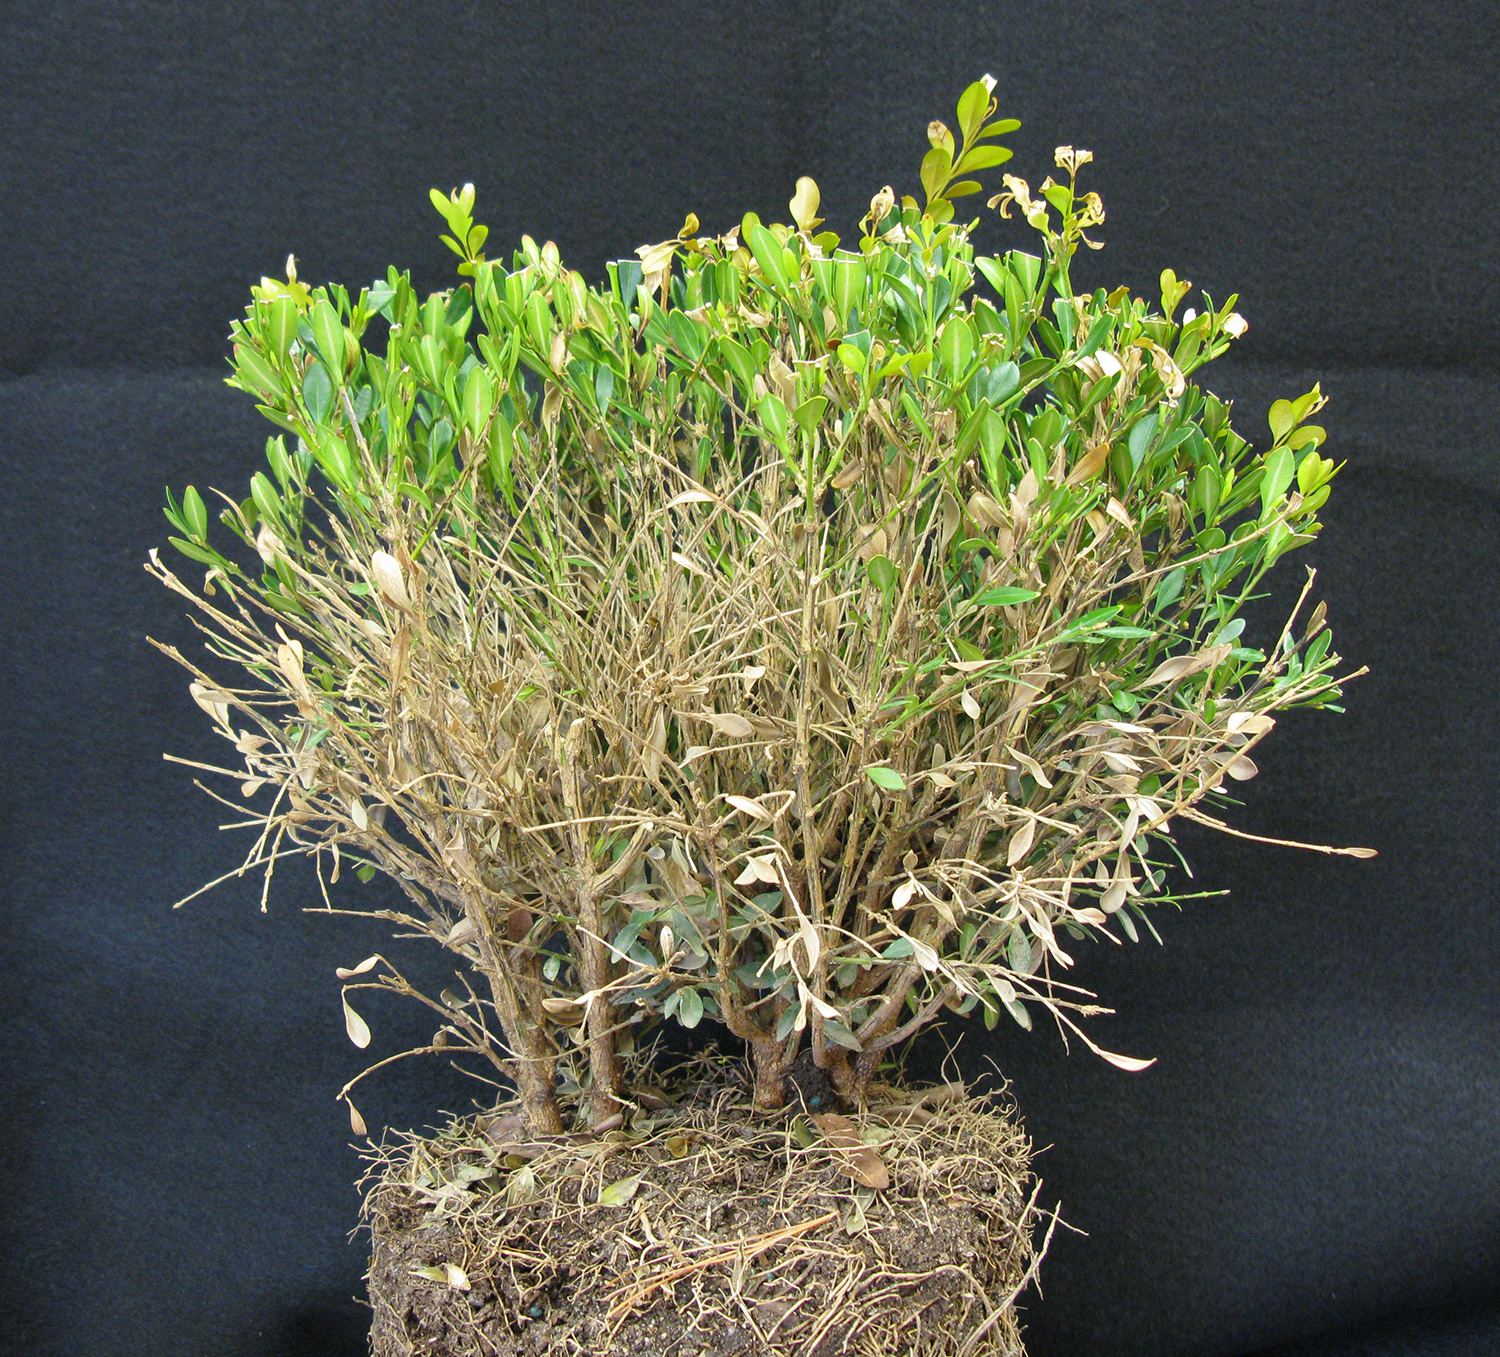 Boxwood Blight Confirmation In Kentucky Samples – ARBOR DOCTOR LLC